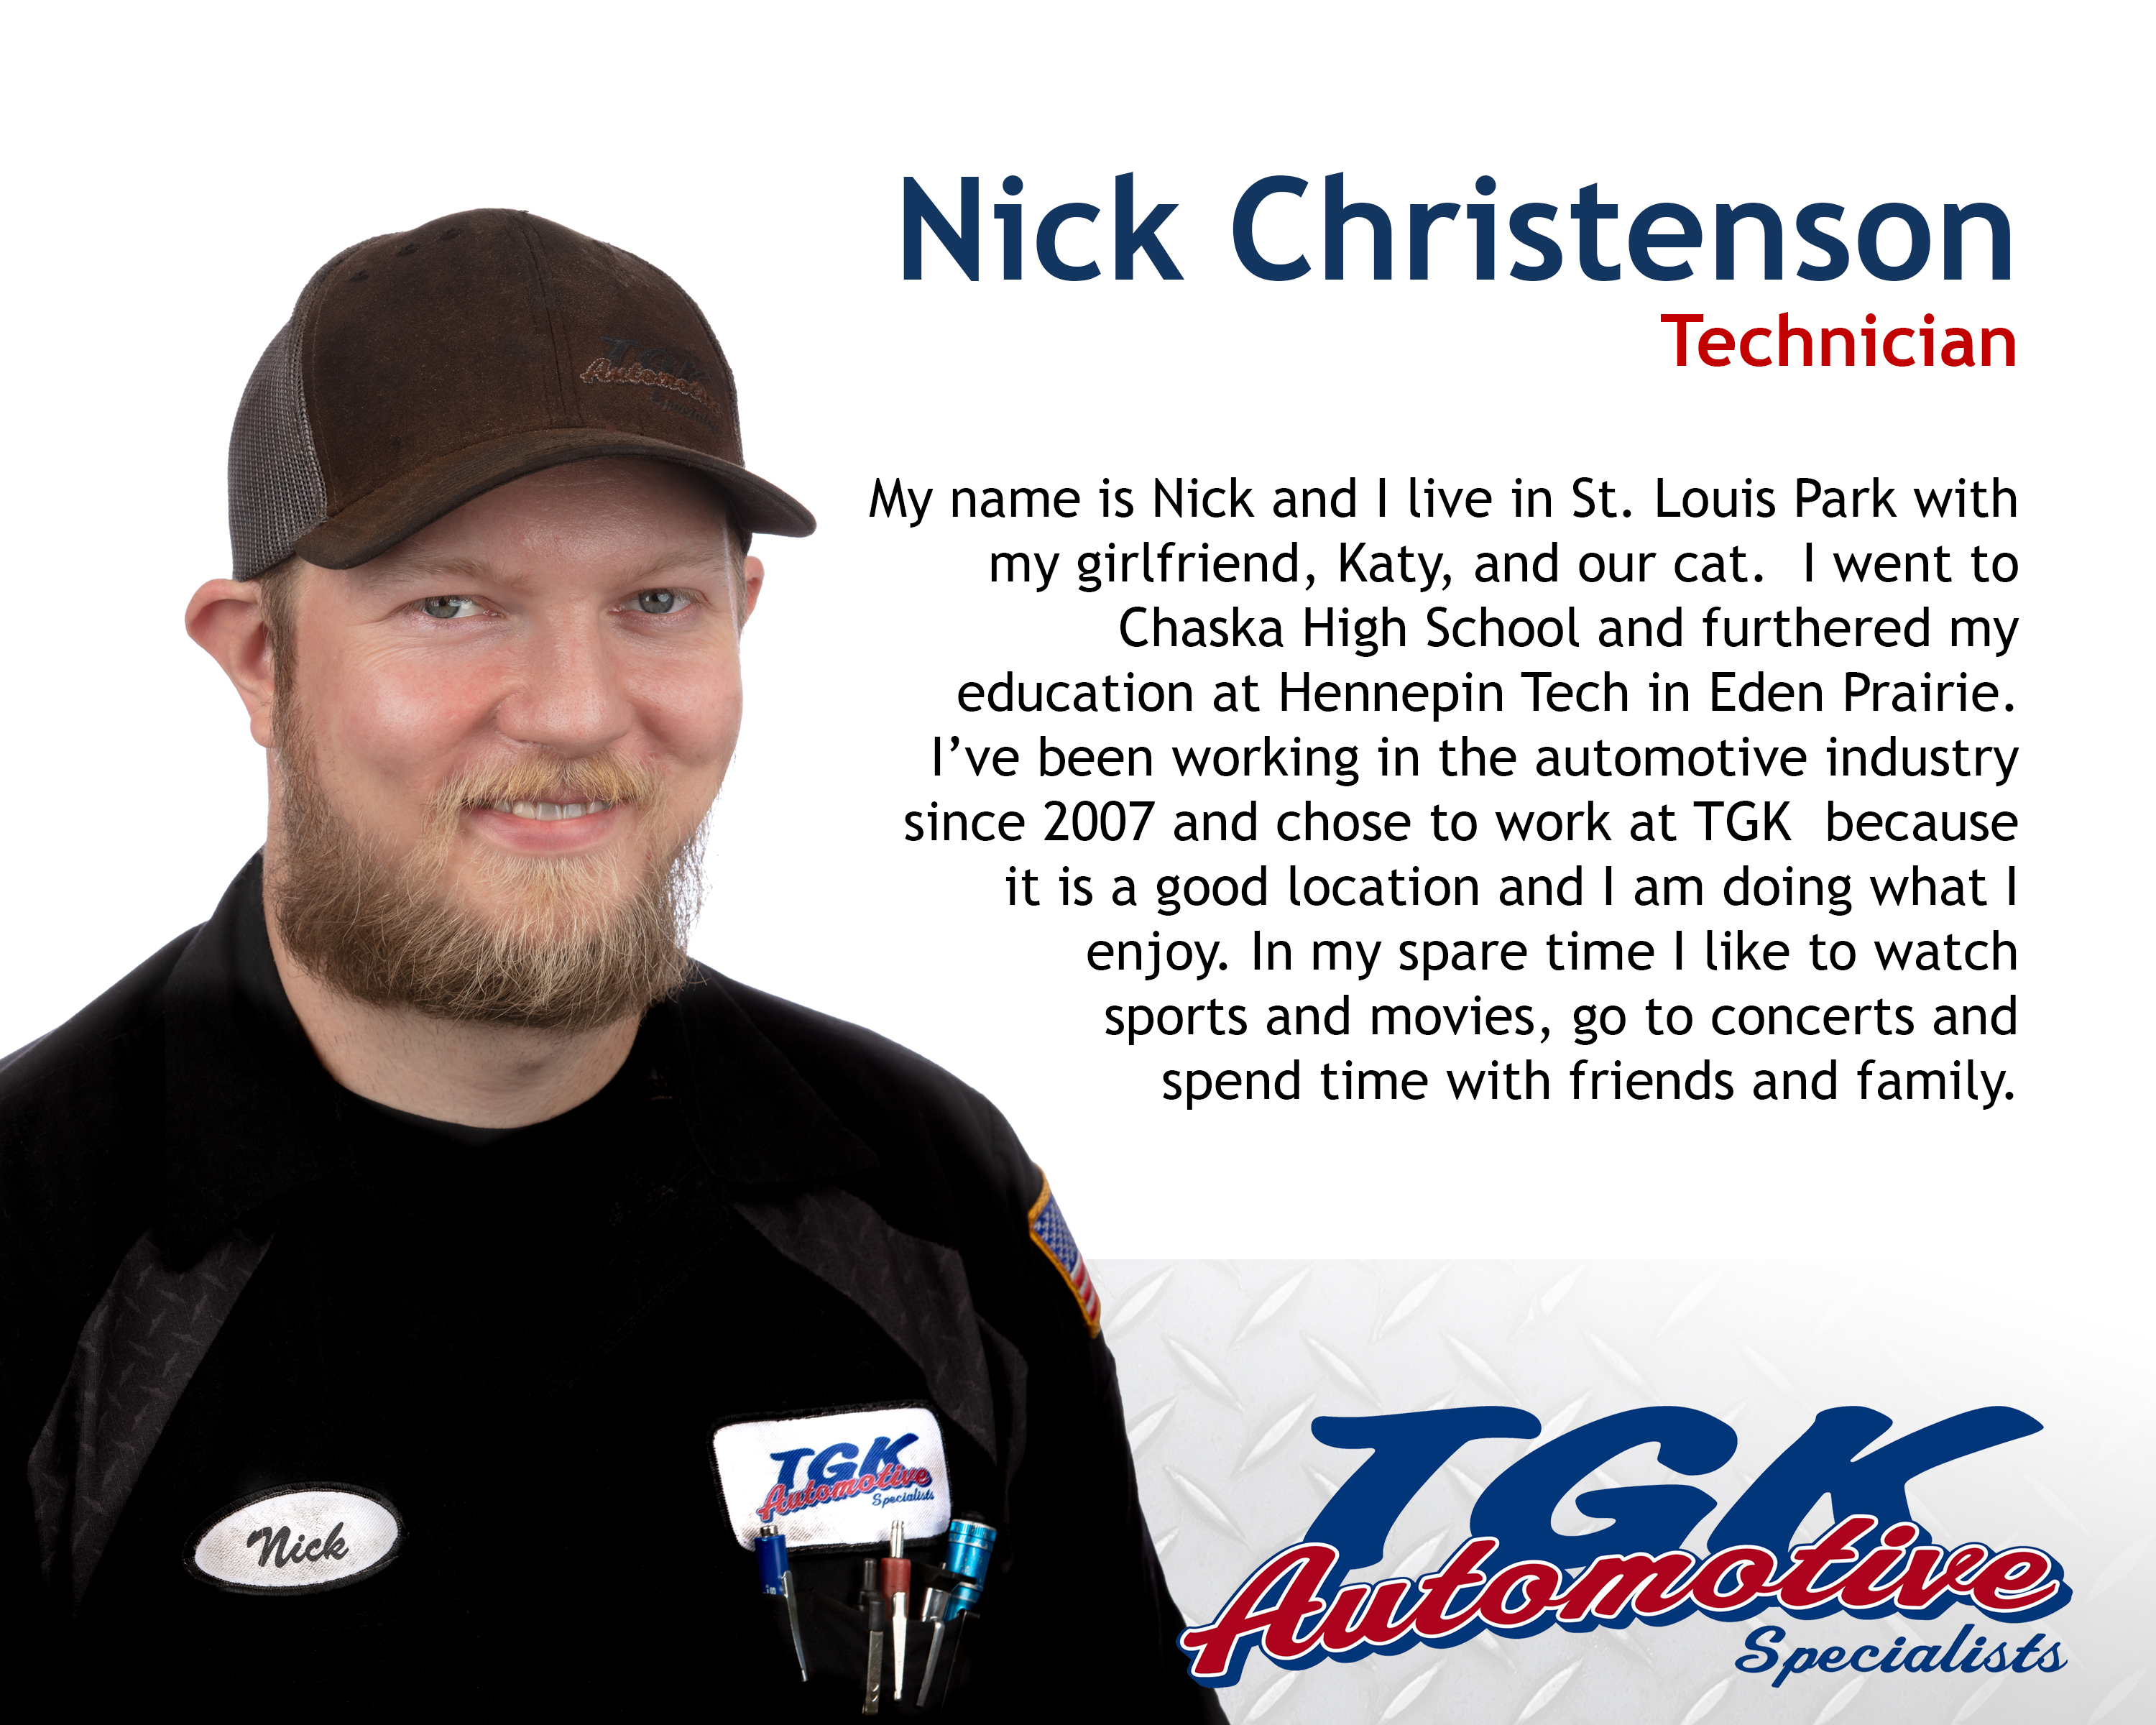 NICK CHRISTENSON, TECHNICIAN